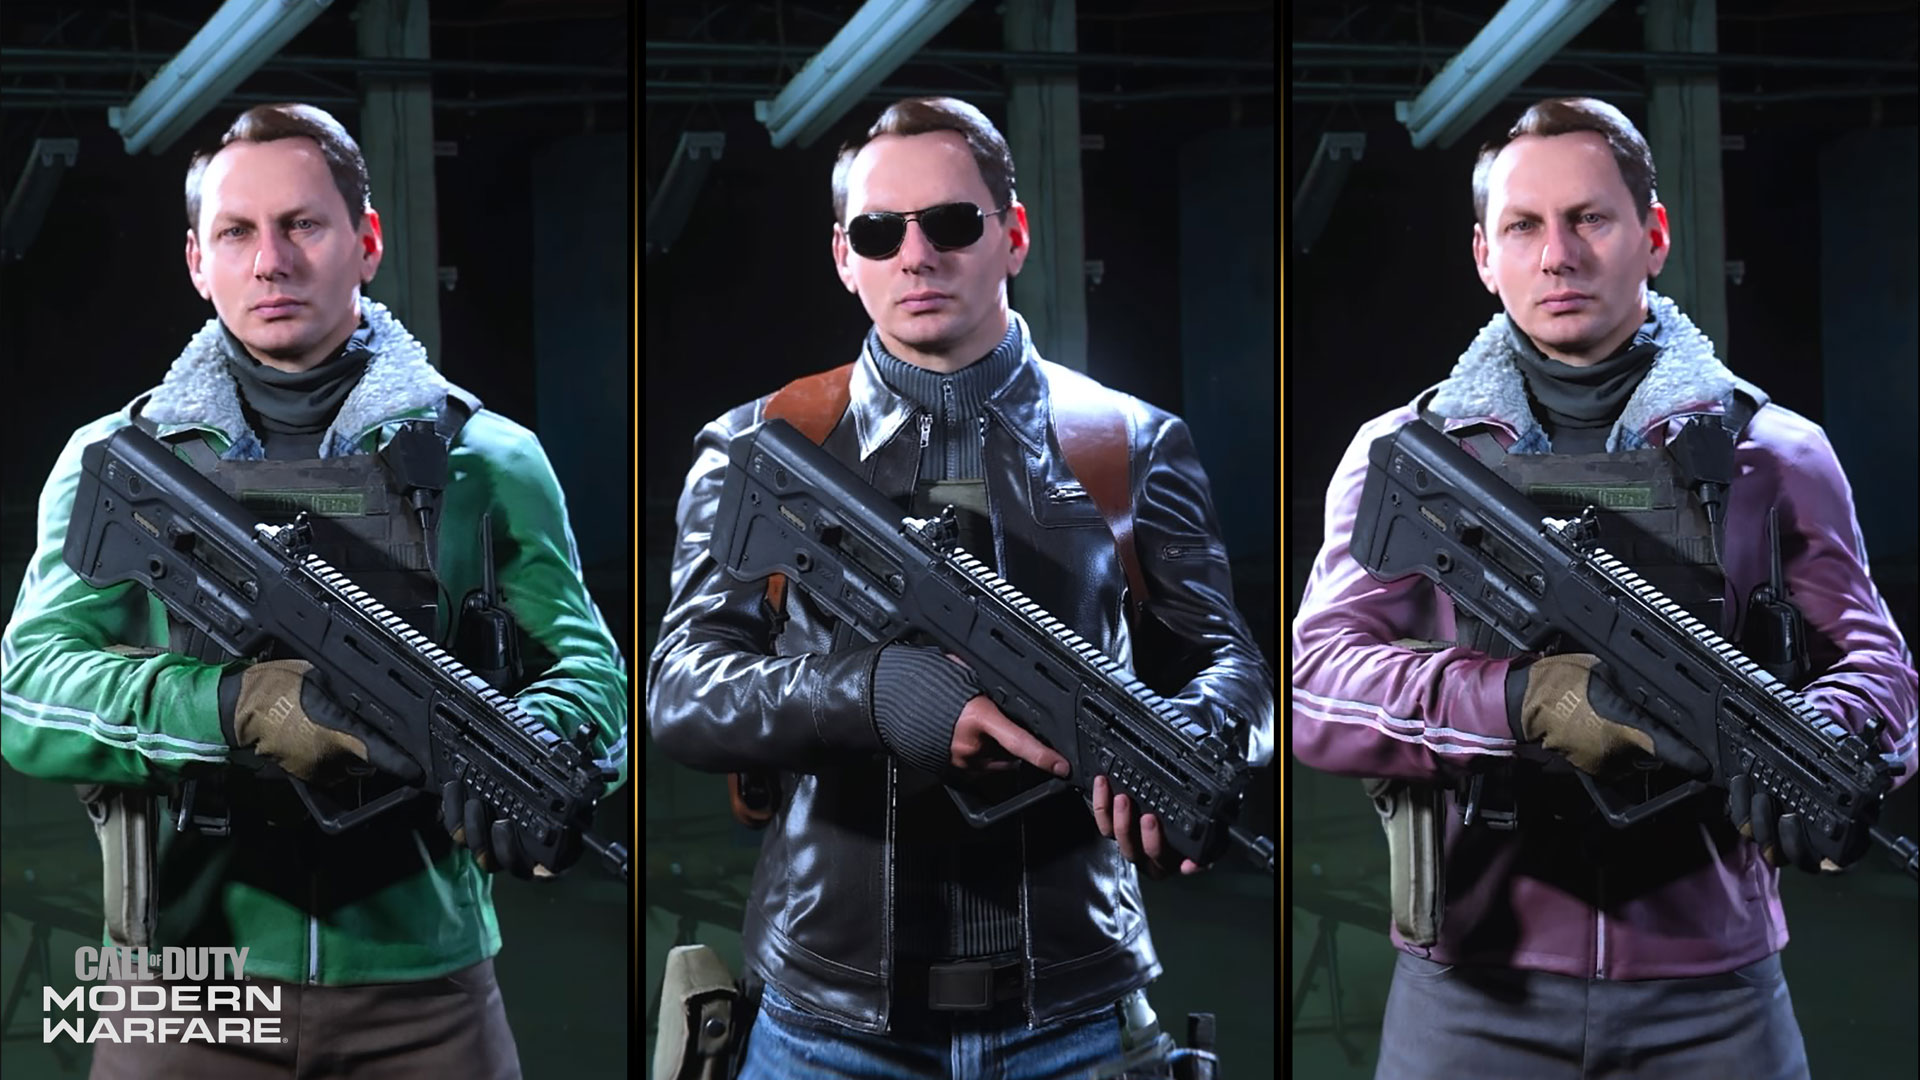 The Allegiance Operators of Call of Duty®: Modern Warfare® bring Mace to Battle - Image 5